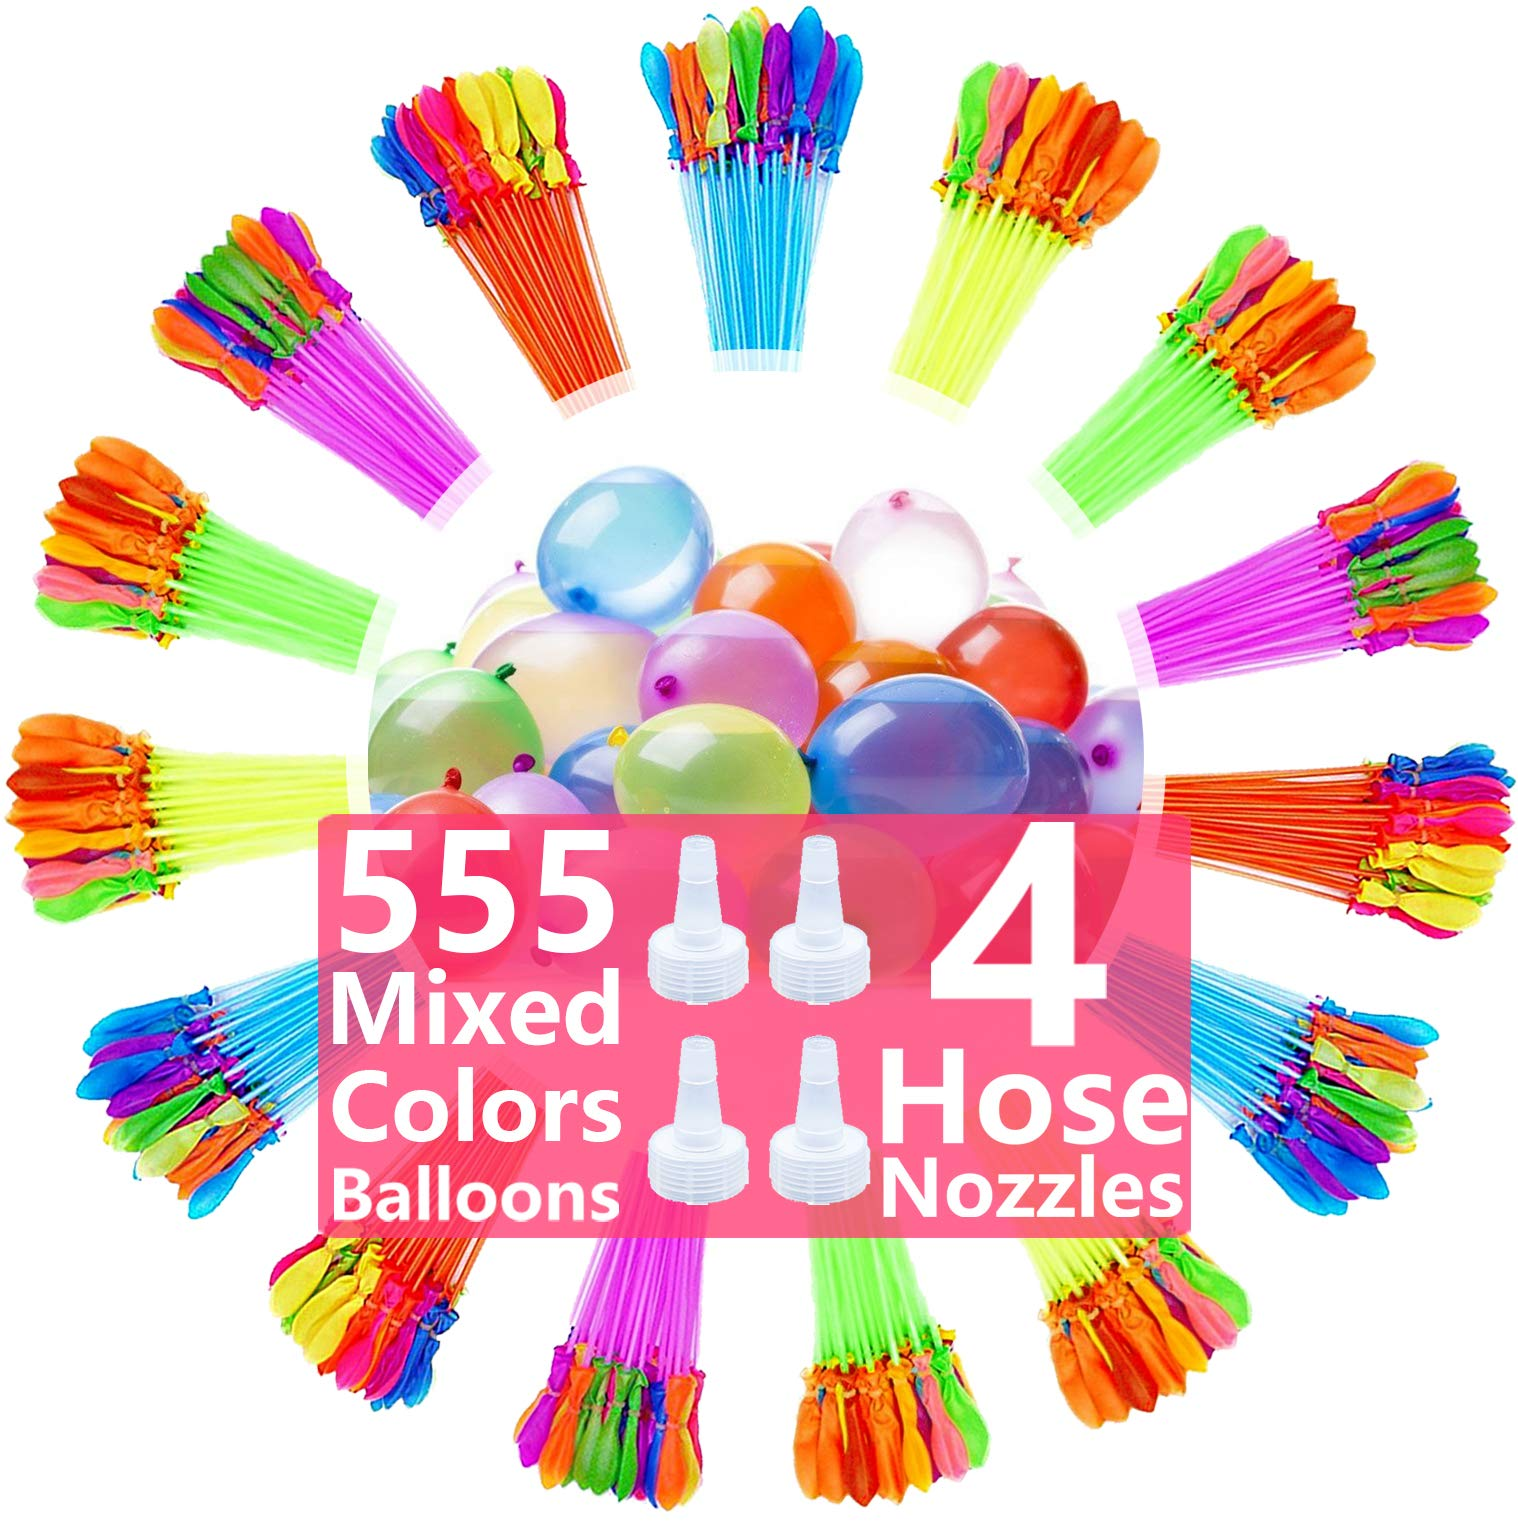 Water Balloons for Kids Girls Boys Balloons Set Party Games Quick Fill Water Balloons 555 Bunches Swimming Pool Outdoor Summer Fun Y11C by Magic balloons